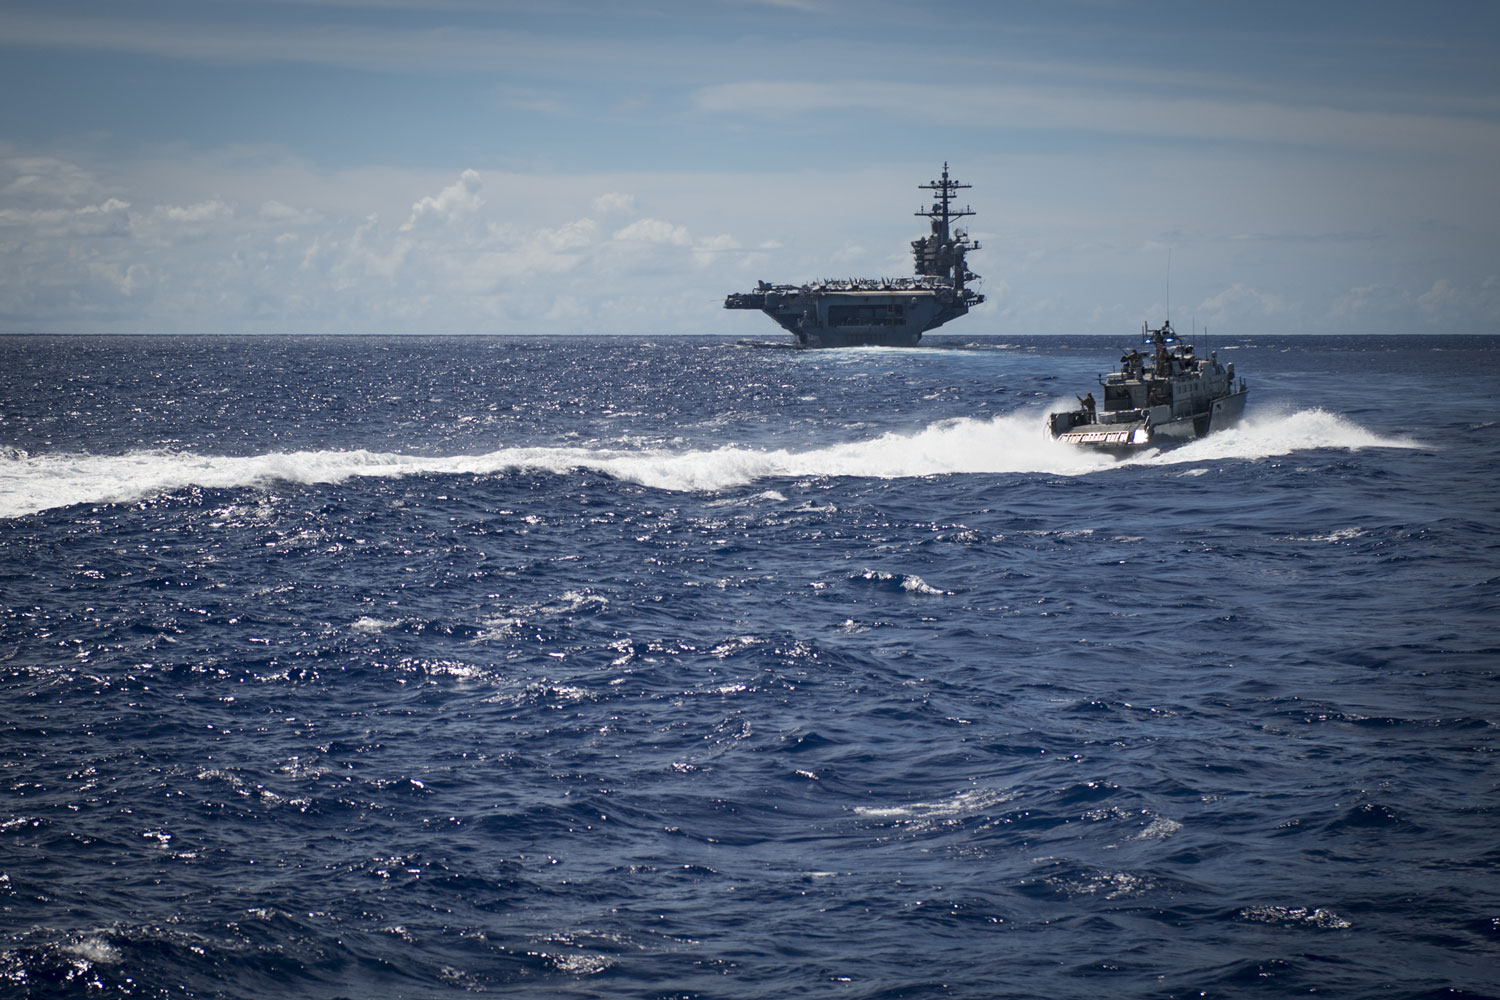 Sailors assigned to Coastal Riverine Squadron 2, aboard a MK VI patrol boat, provide high value asset protection for the aircraft carrier USS Theodore Roosevelt as it transits to Apra Harbor, Guam.